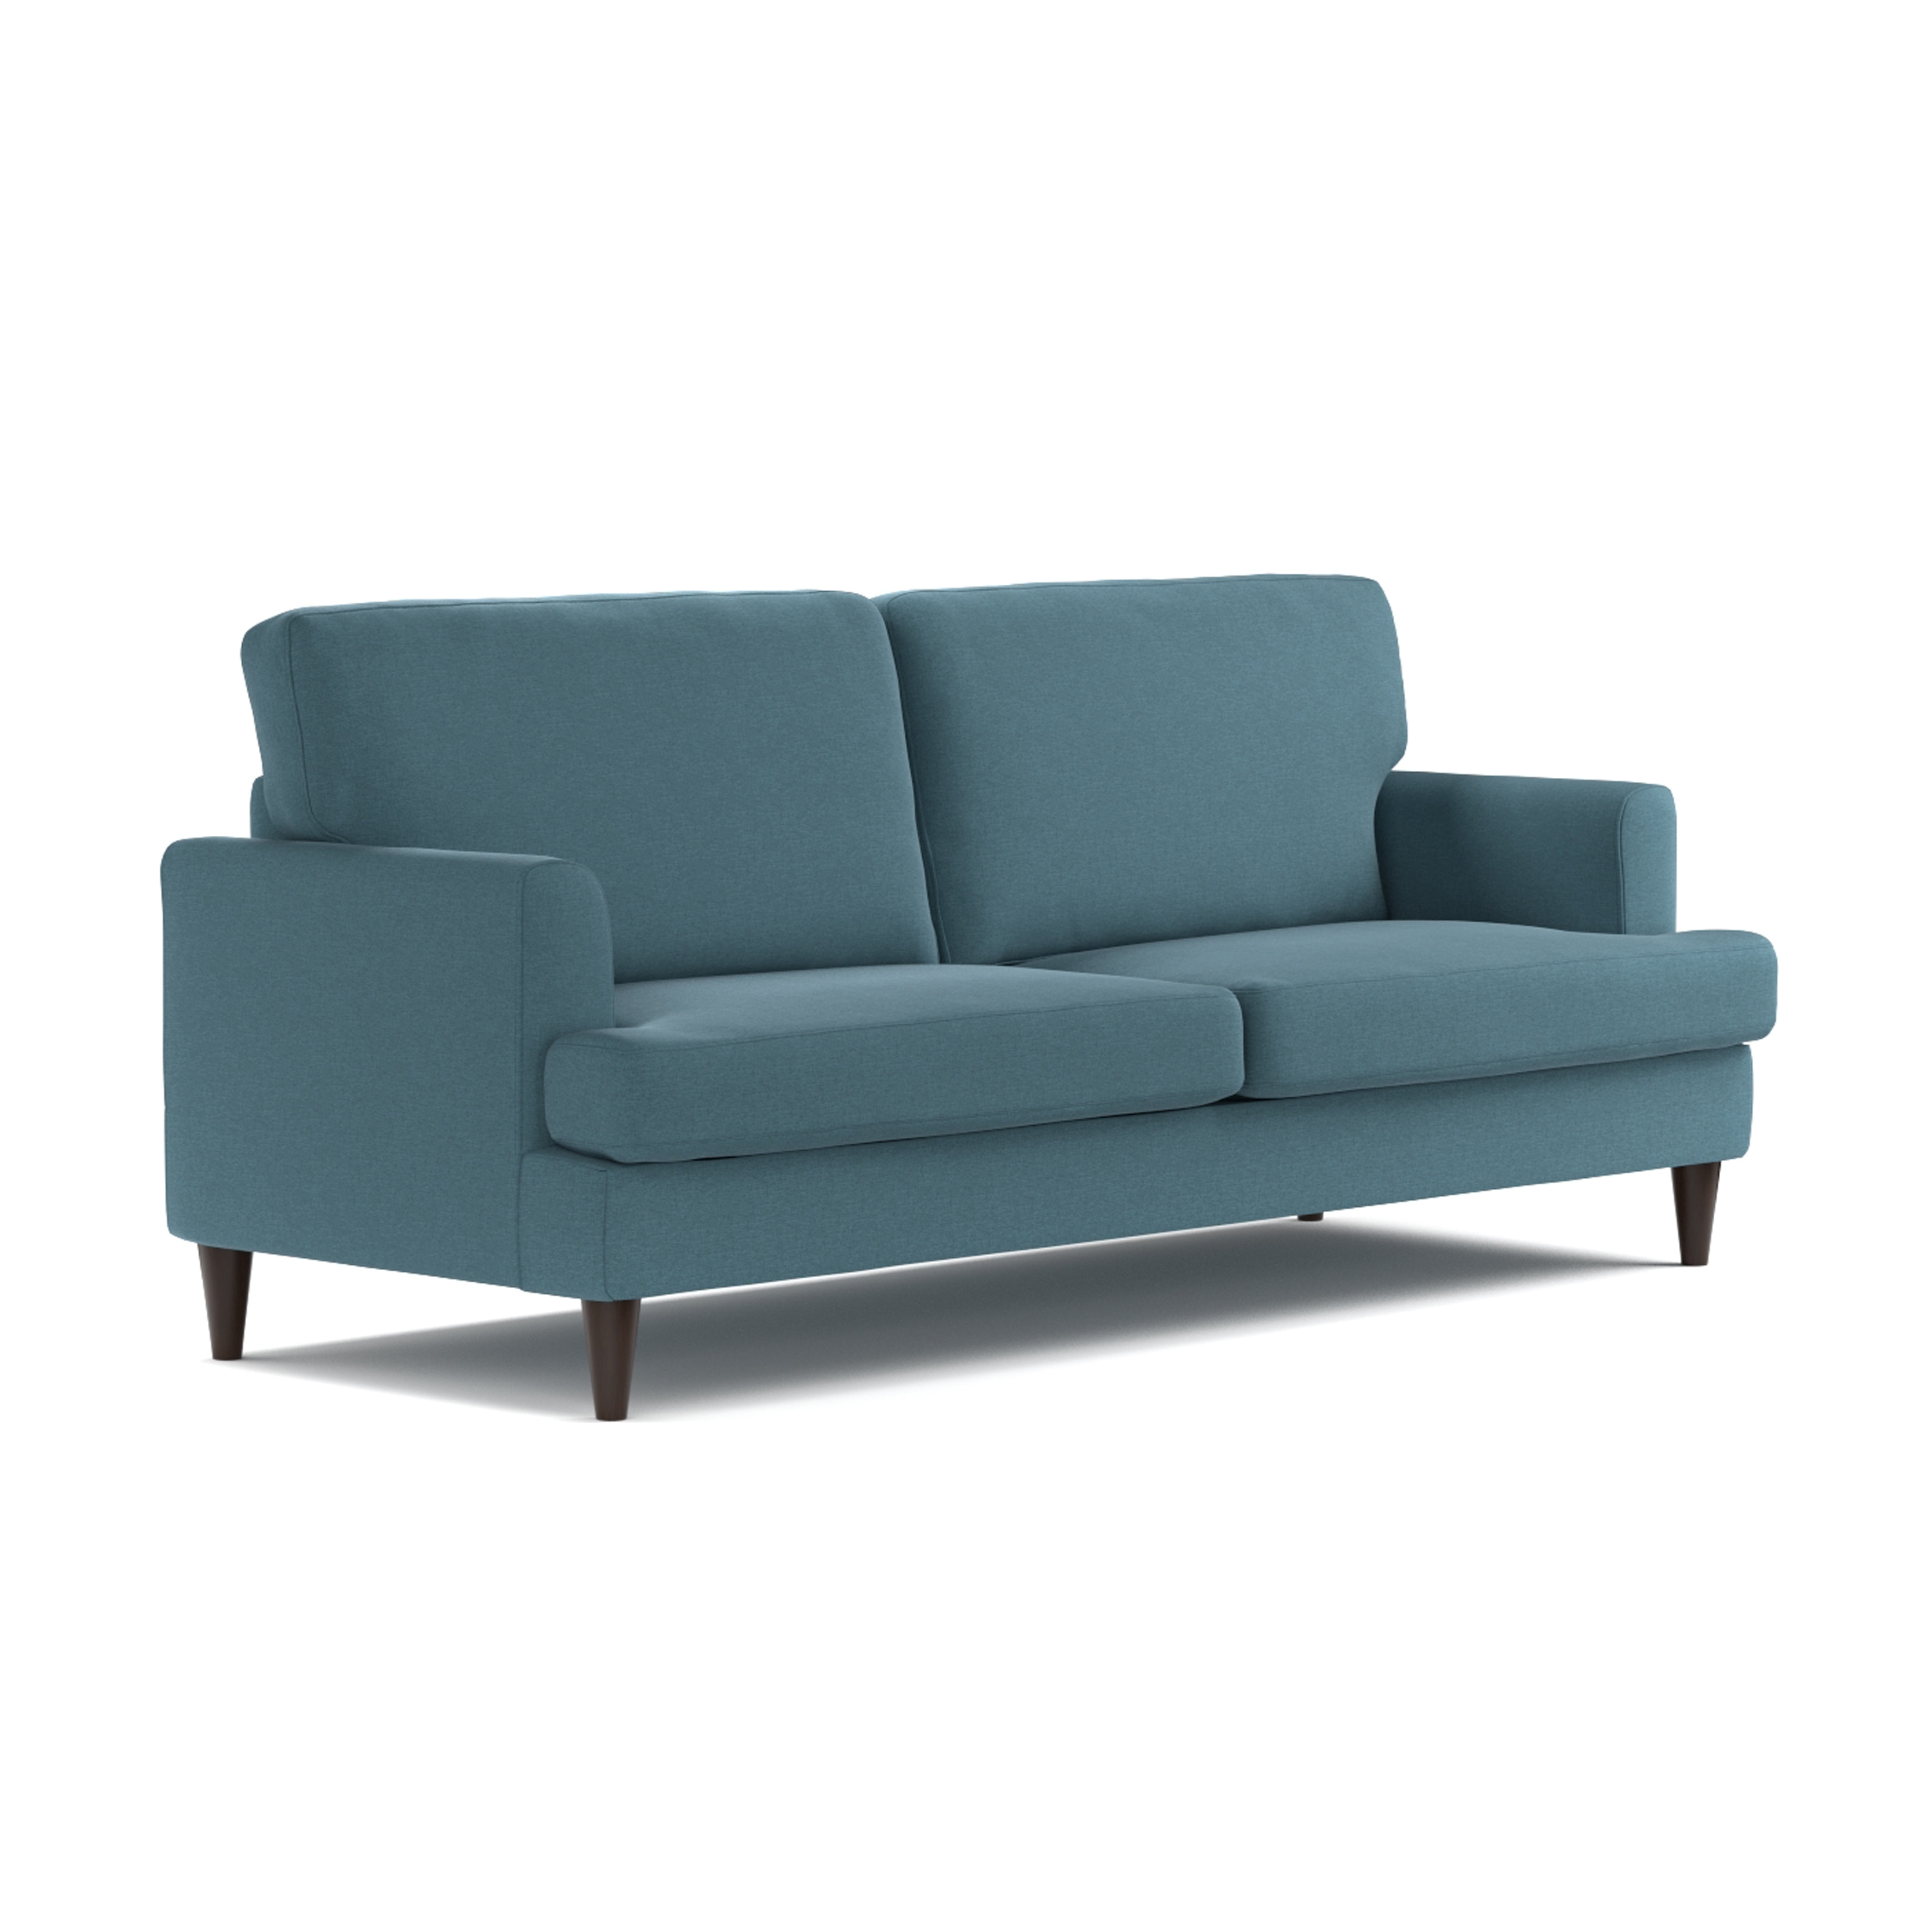 Handy Living Undercover Custom Orlando SoFast Sofa with Tailored Slipcover by Overstock